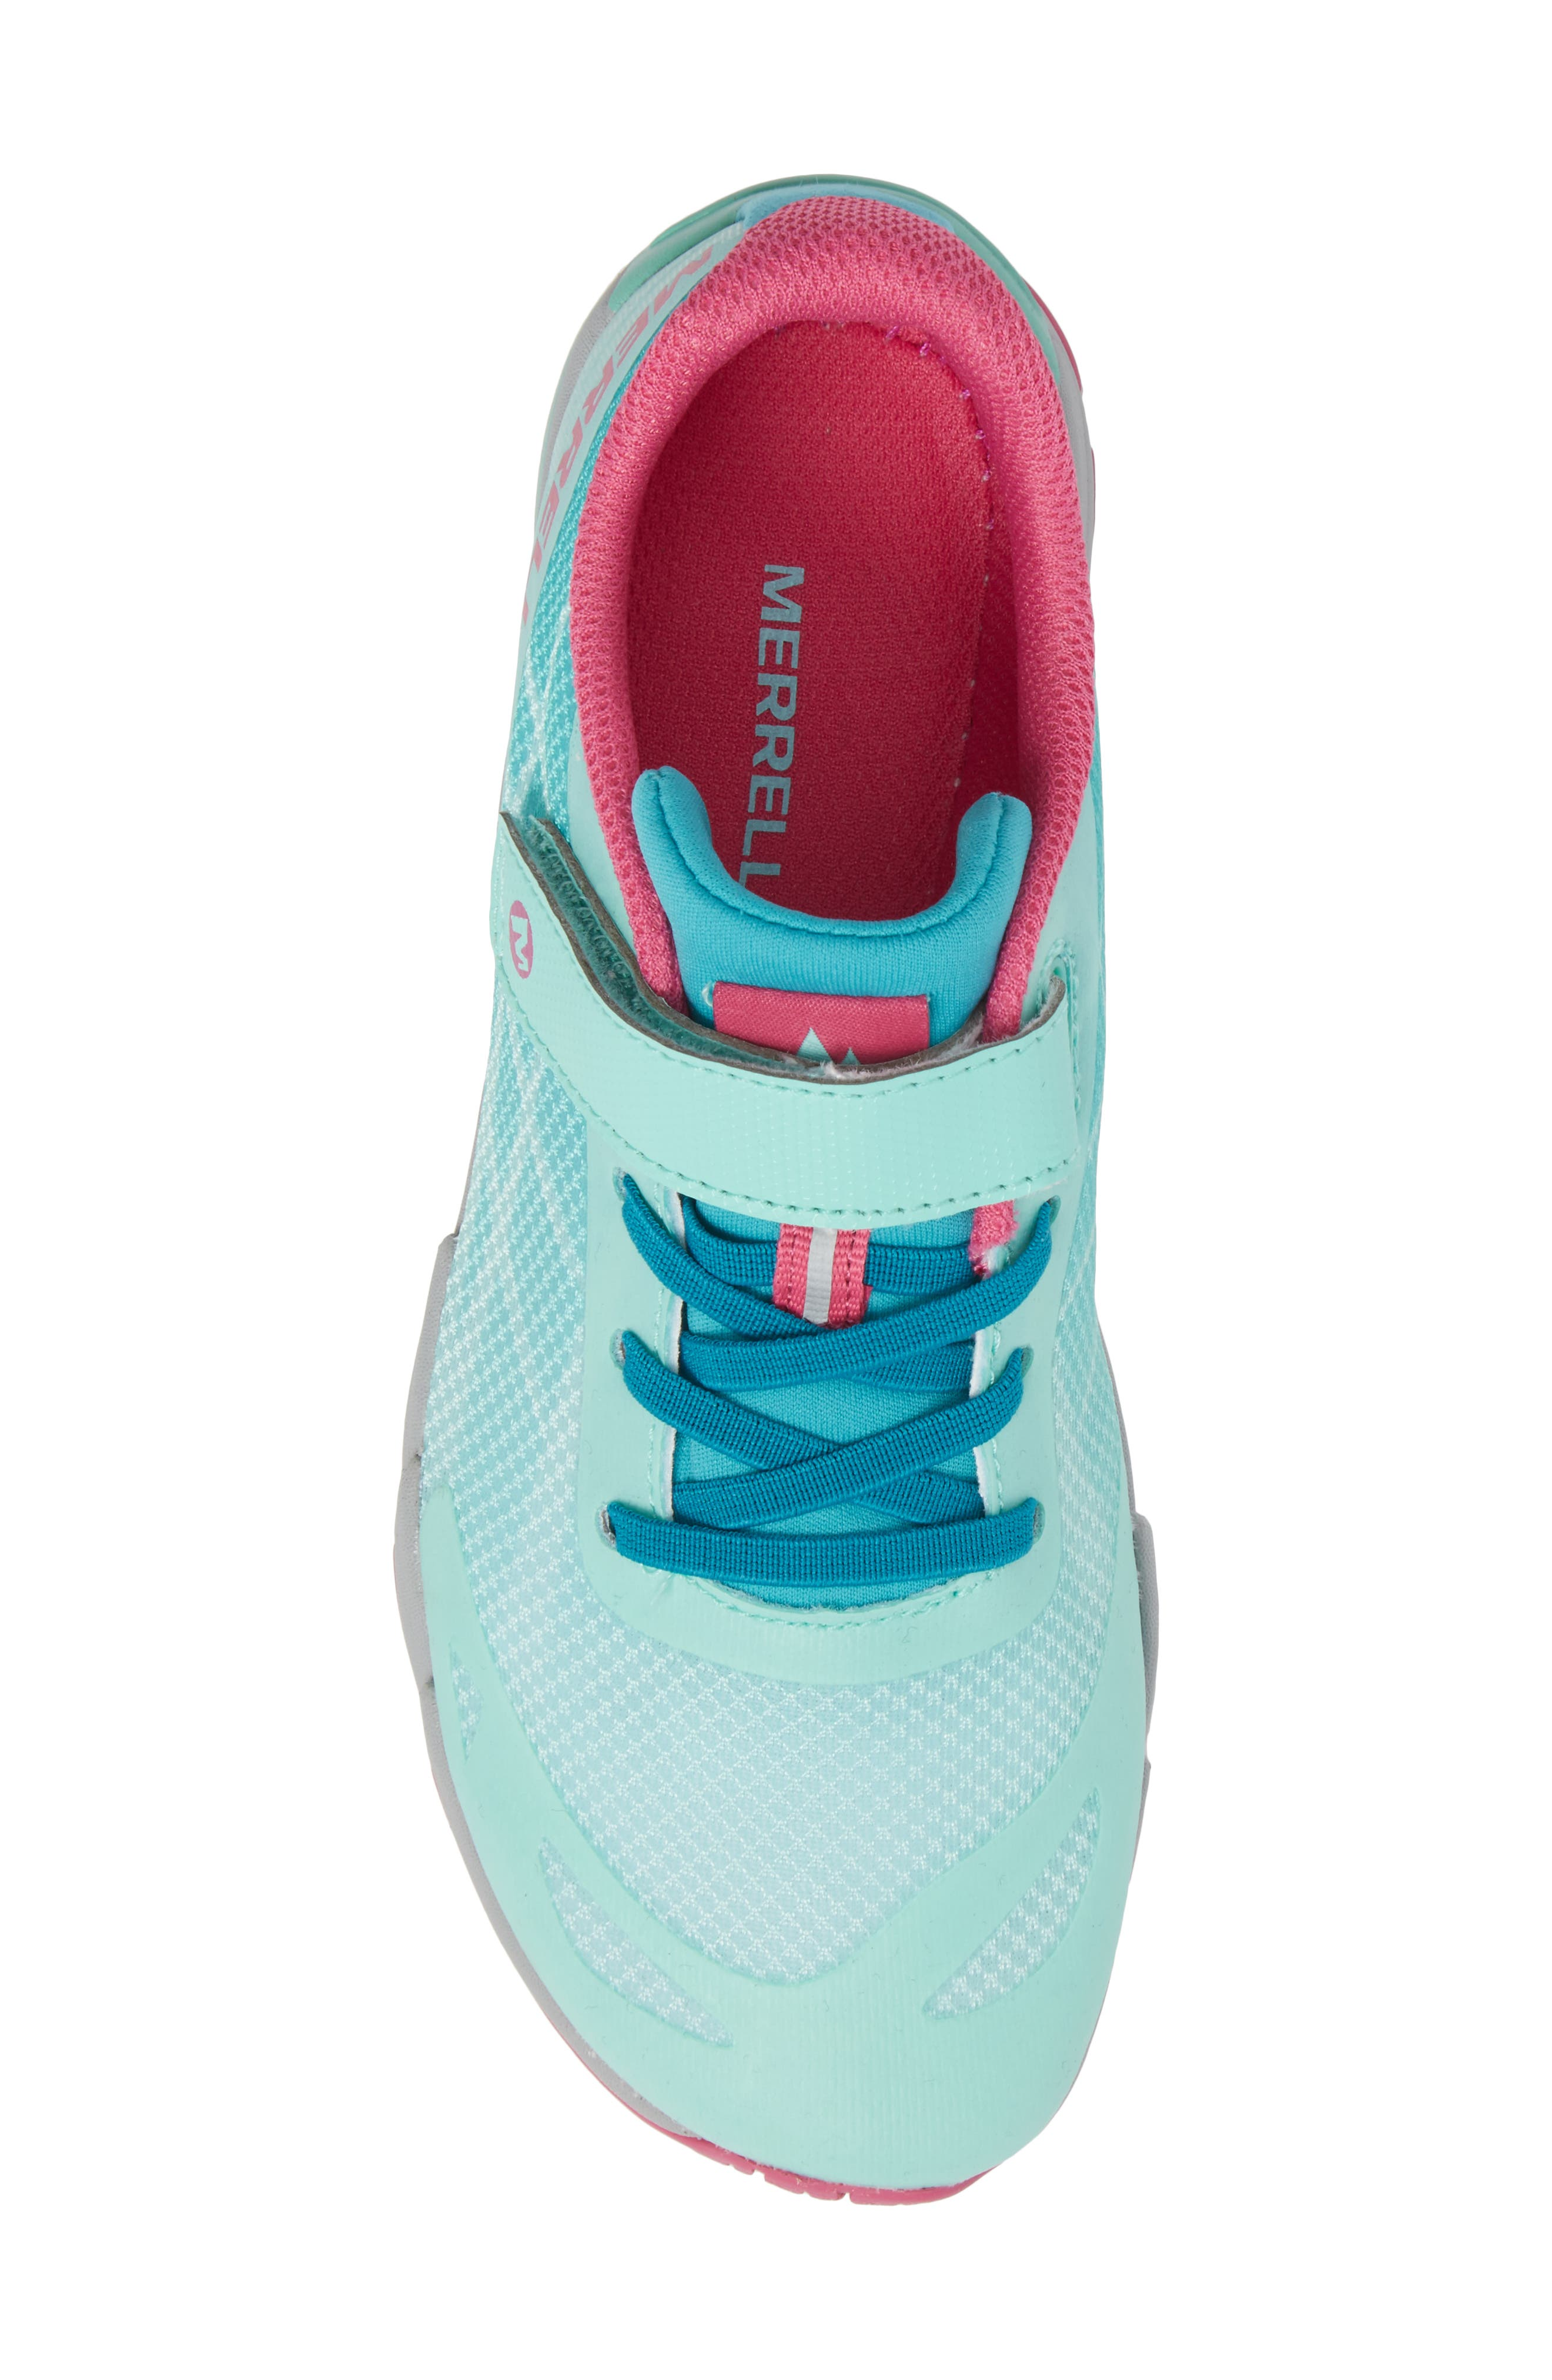 Bare Access Sneaker,                             Alternate thumbnail 5, color,                             Turquoise/ Berry